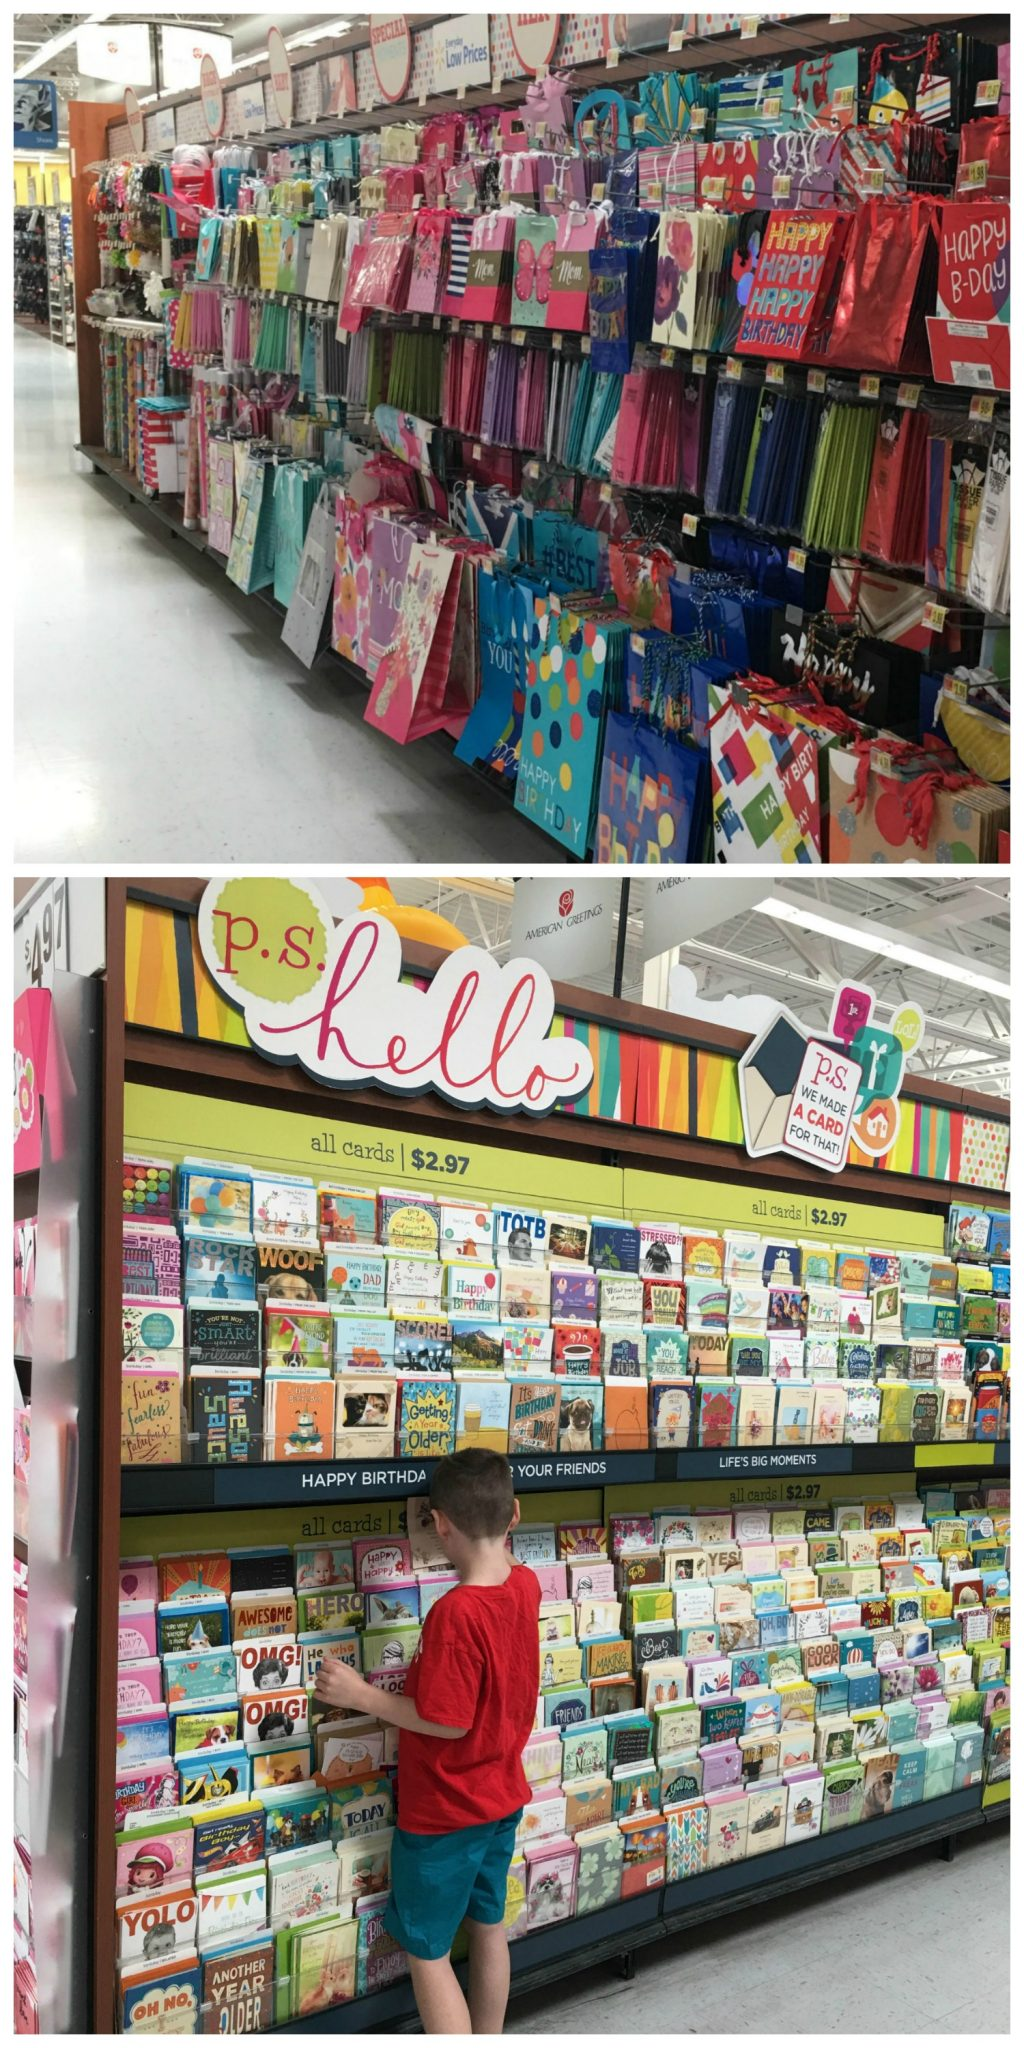 Ps hello cards a just because gift amy latta creations along with all the other great choices in the card aisle there was a new collection called ps hello cards from american greetings m4hsunfo Images